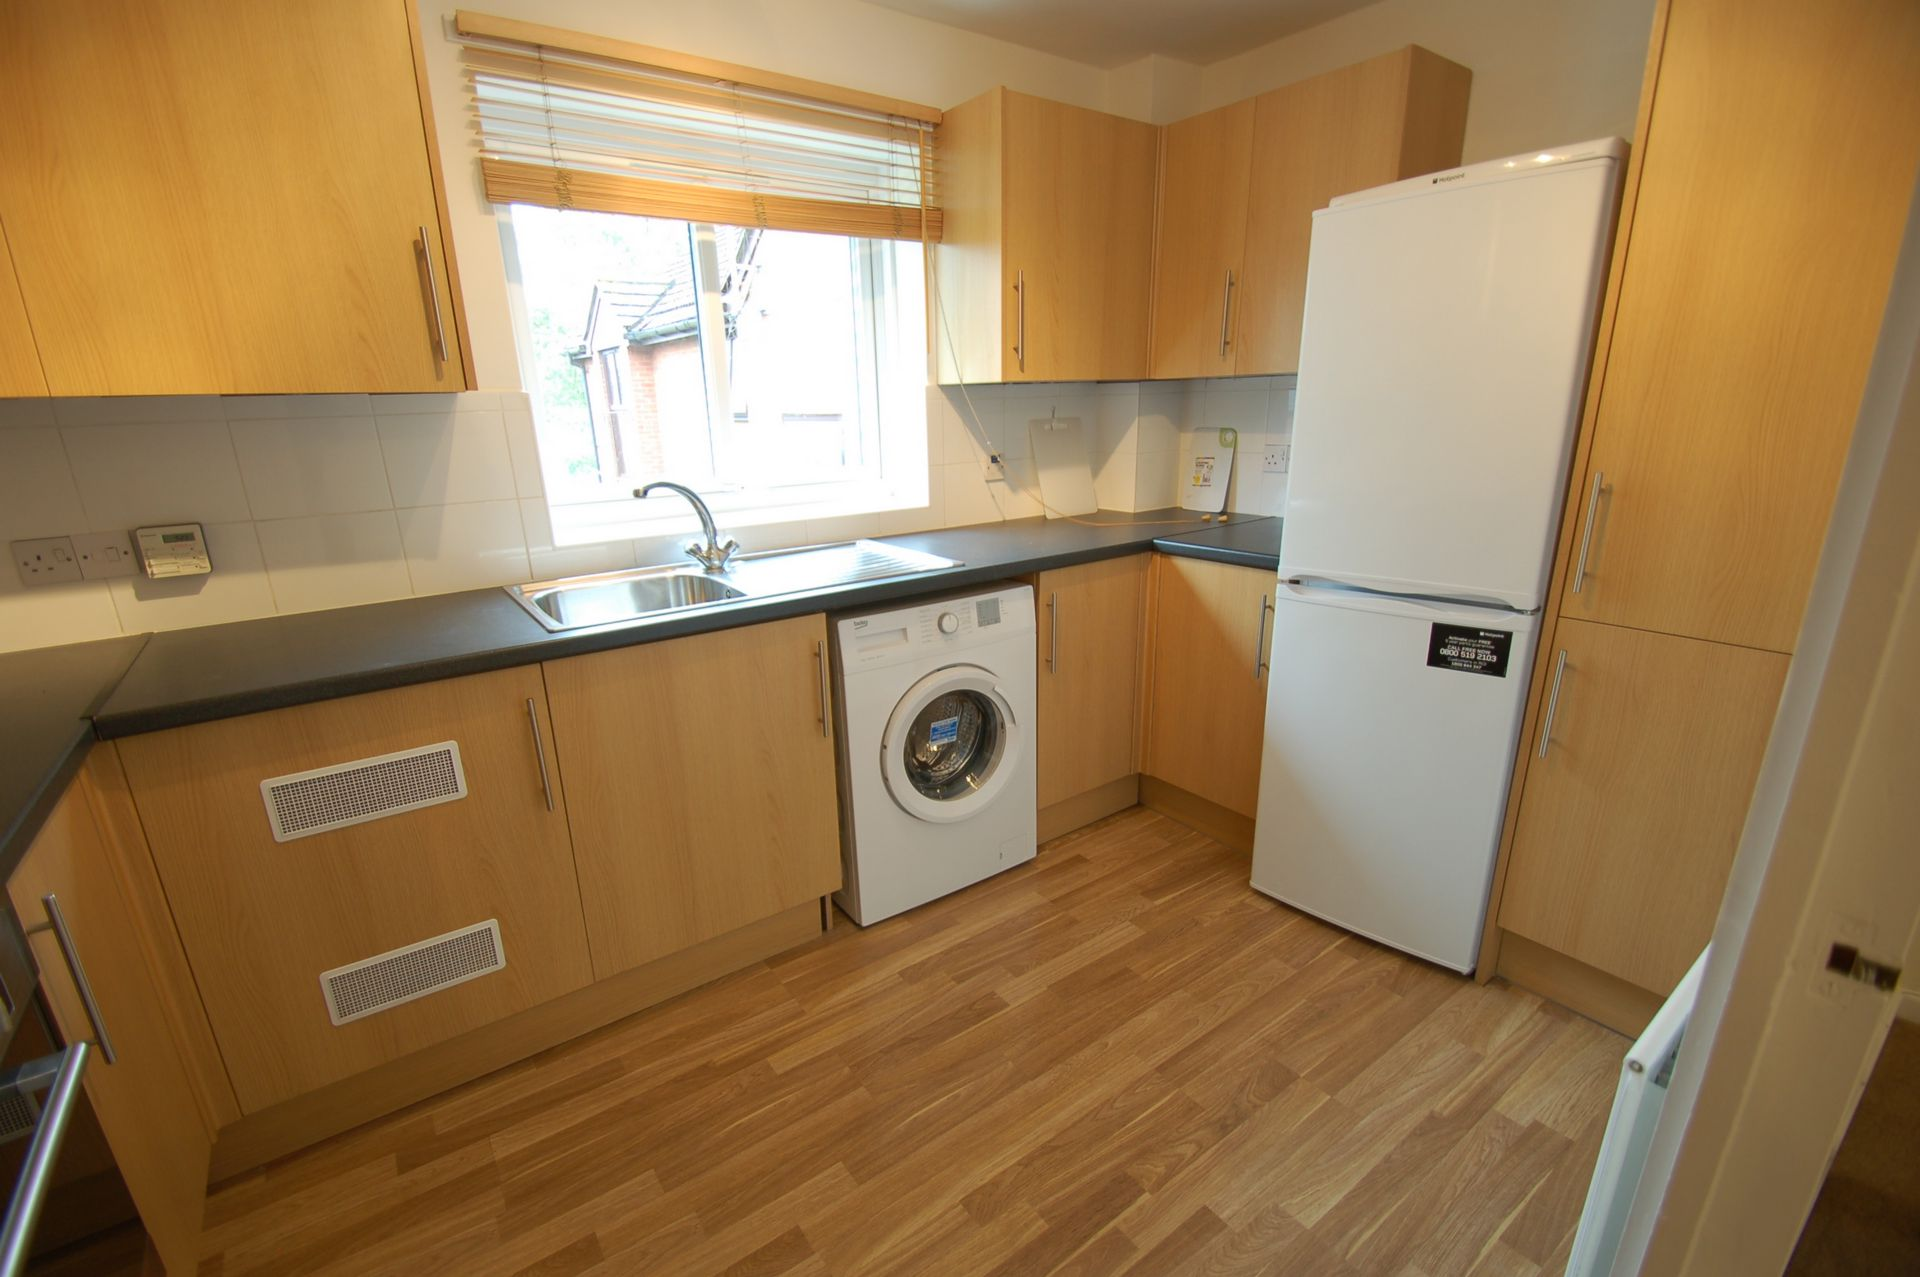 1 Bedroom Flat to rent in Hendon, London, NW4